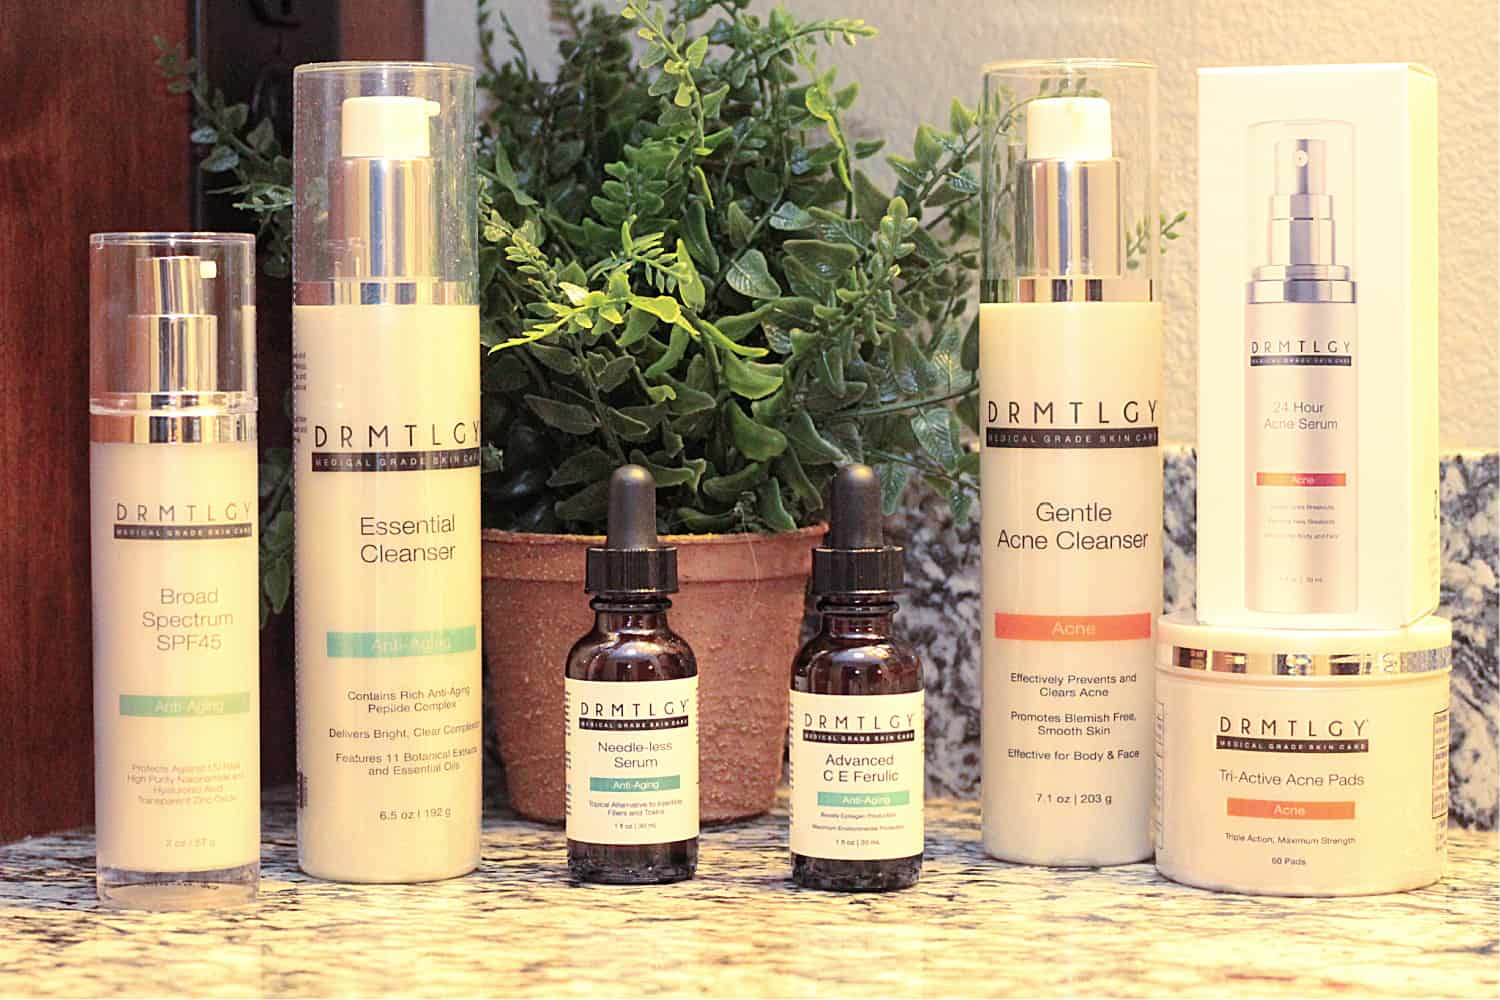 7 bottles of DRMTLGY face products